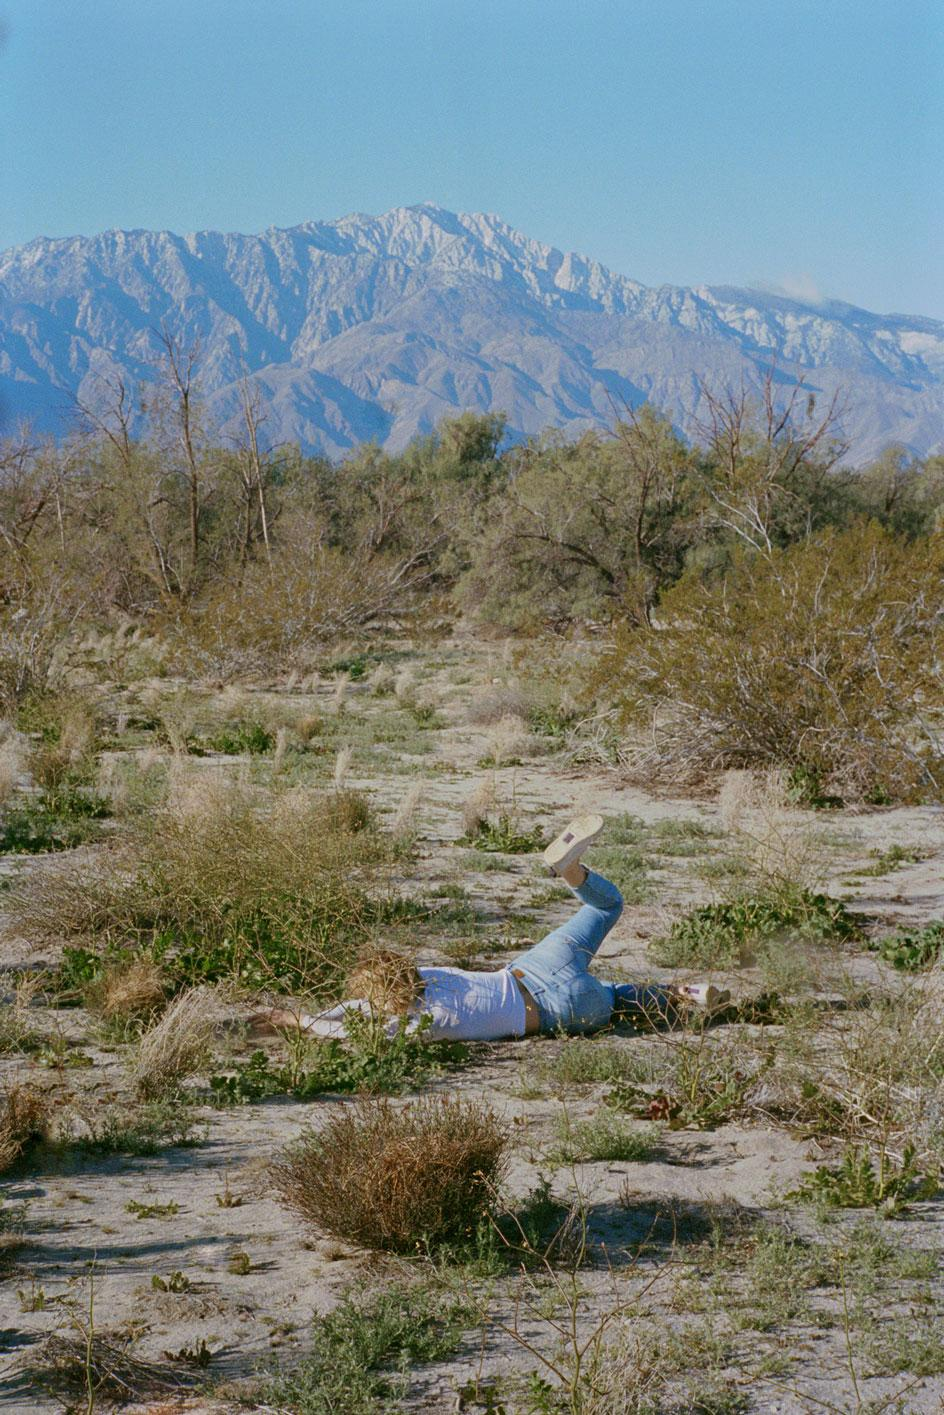 Image of a fallen figure on the ground with a mountainous backdrop. From Gabby Laurent's series Falling 2018-2020